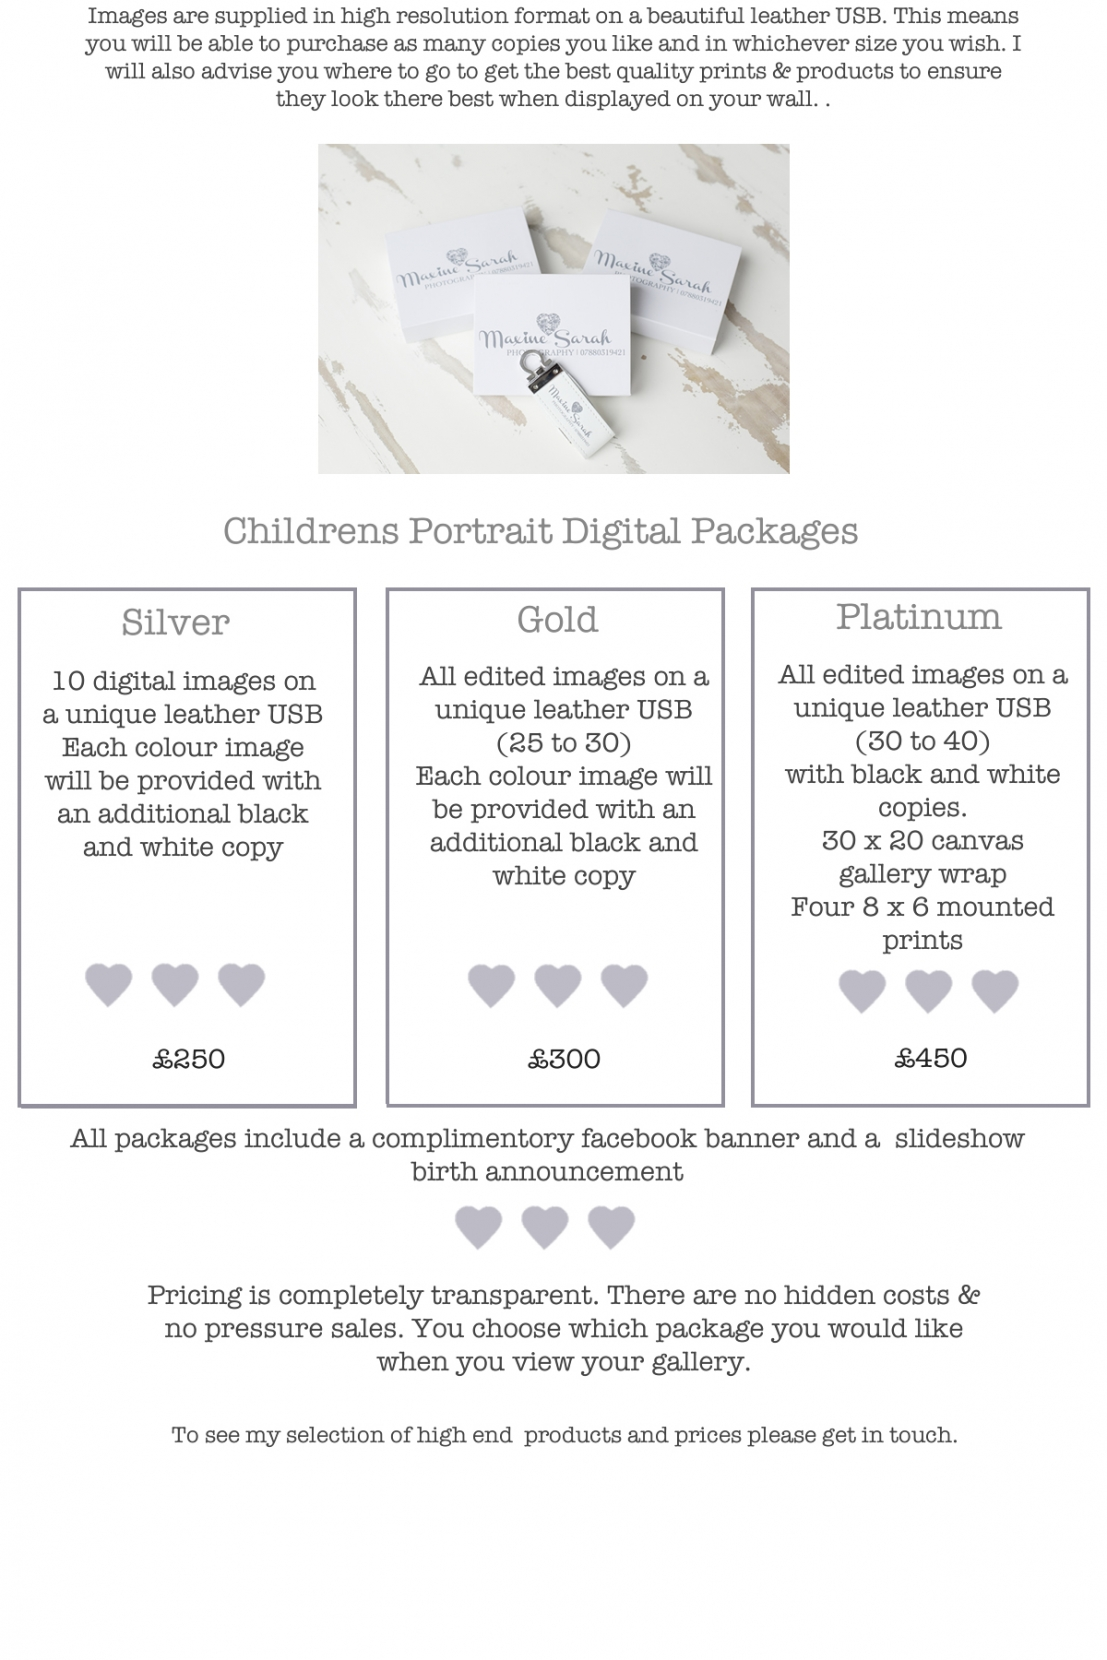 childrens packages